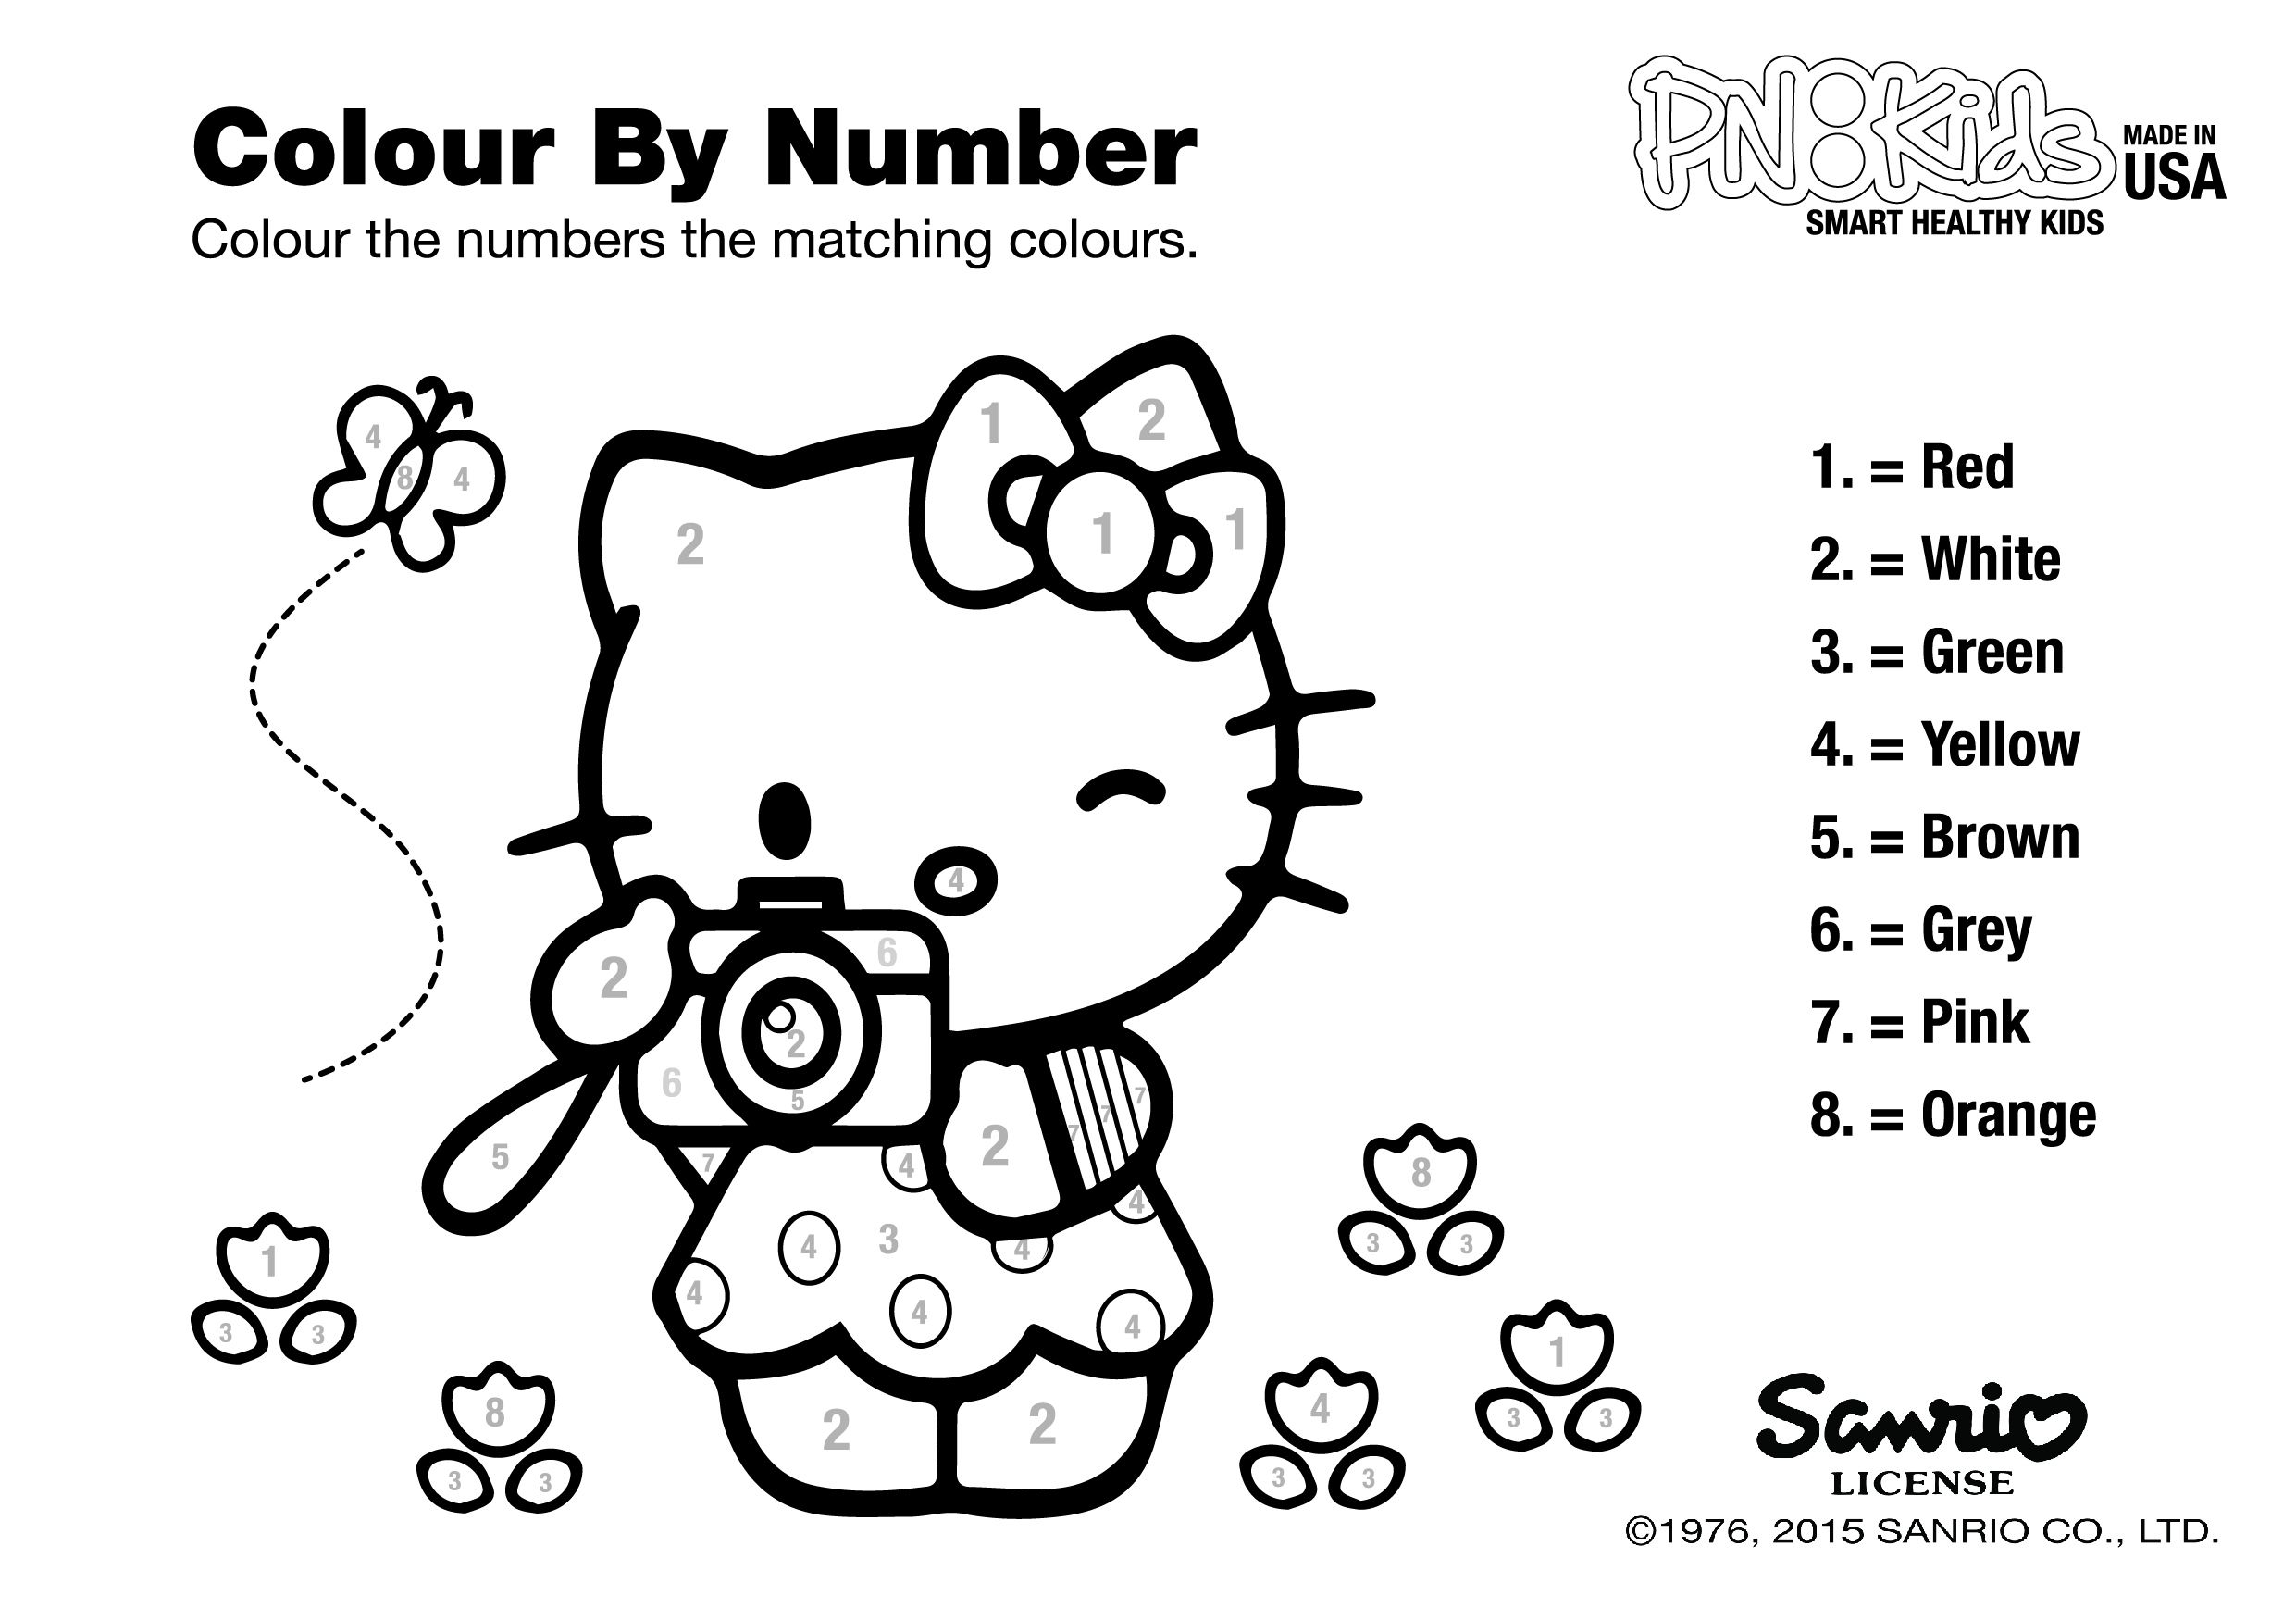 Hello Kitty Coloring Pages By Numbers - Coloring pages allow kids to  accompany their … | Hello kitty colouring pages, Hello kitty coloring,  Birthday coloring pages